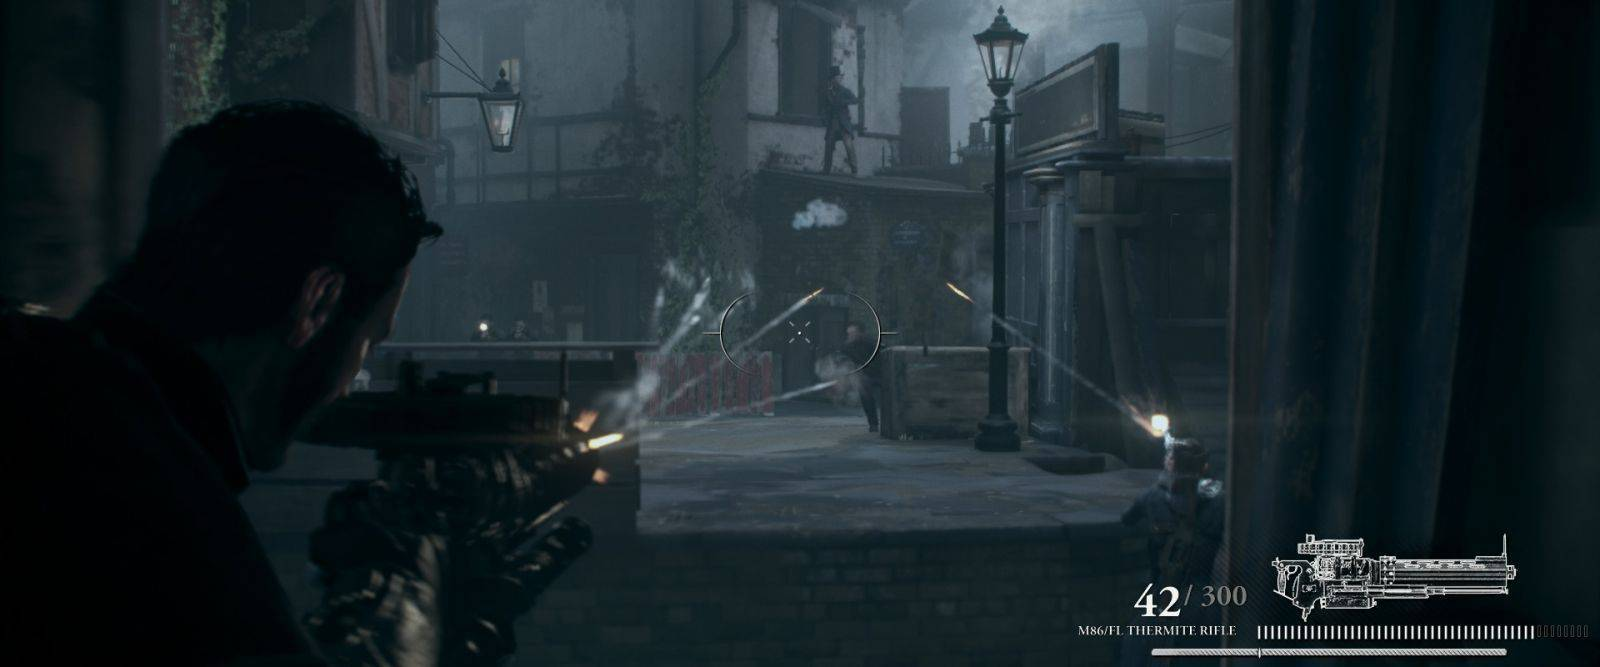 the-order-1886-direct-feed-ps4-screen-3(Gamelive.ir)